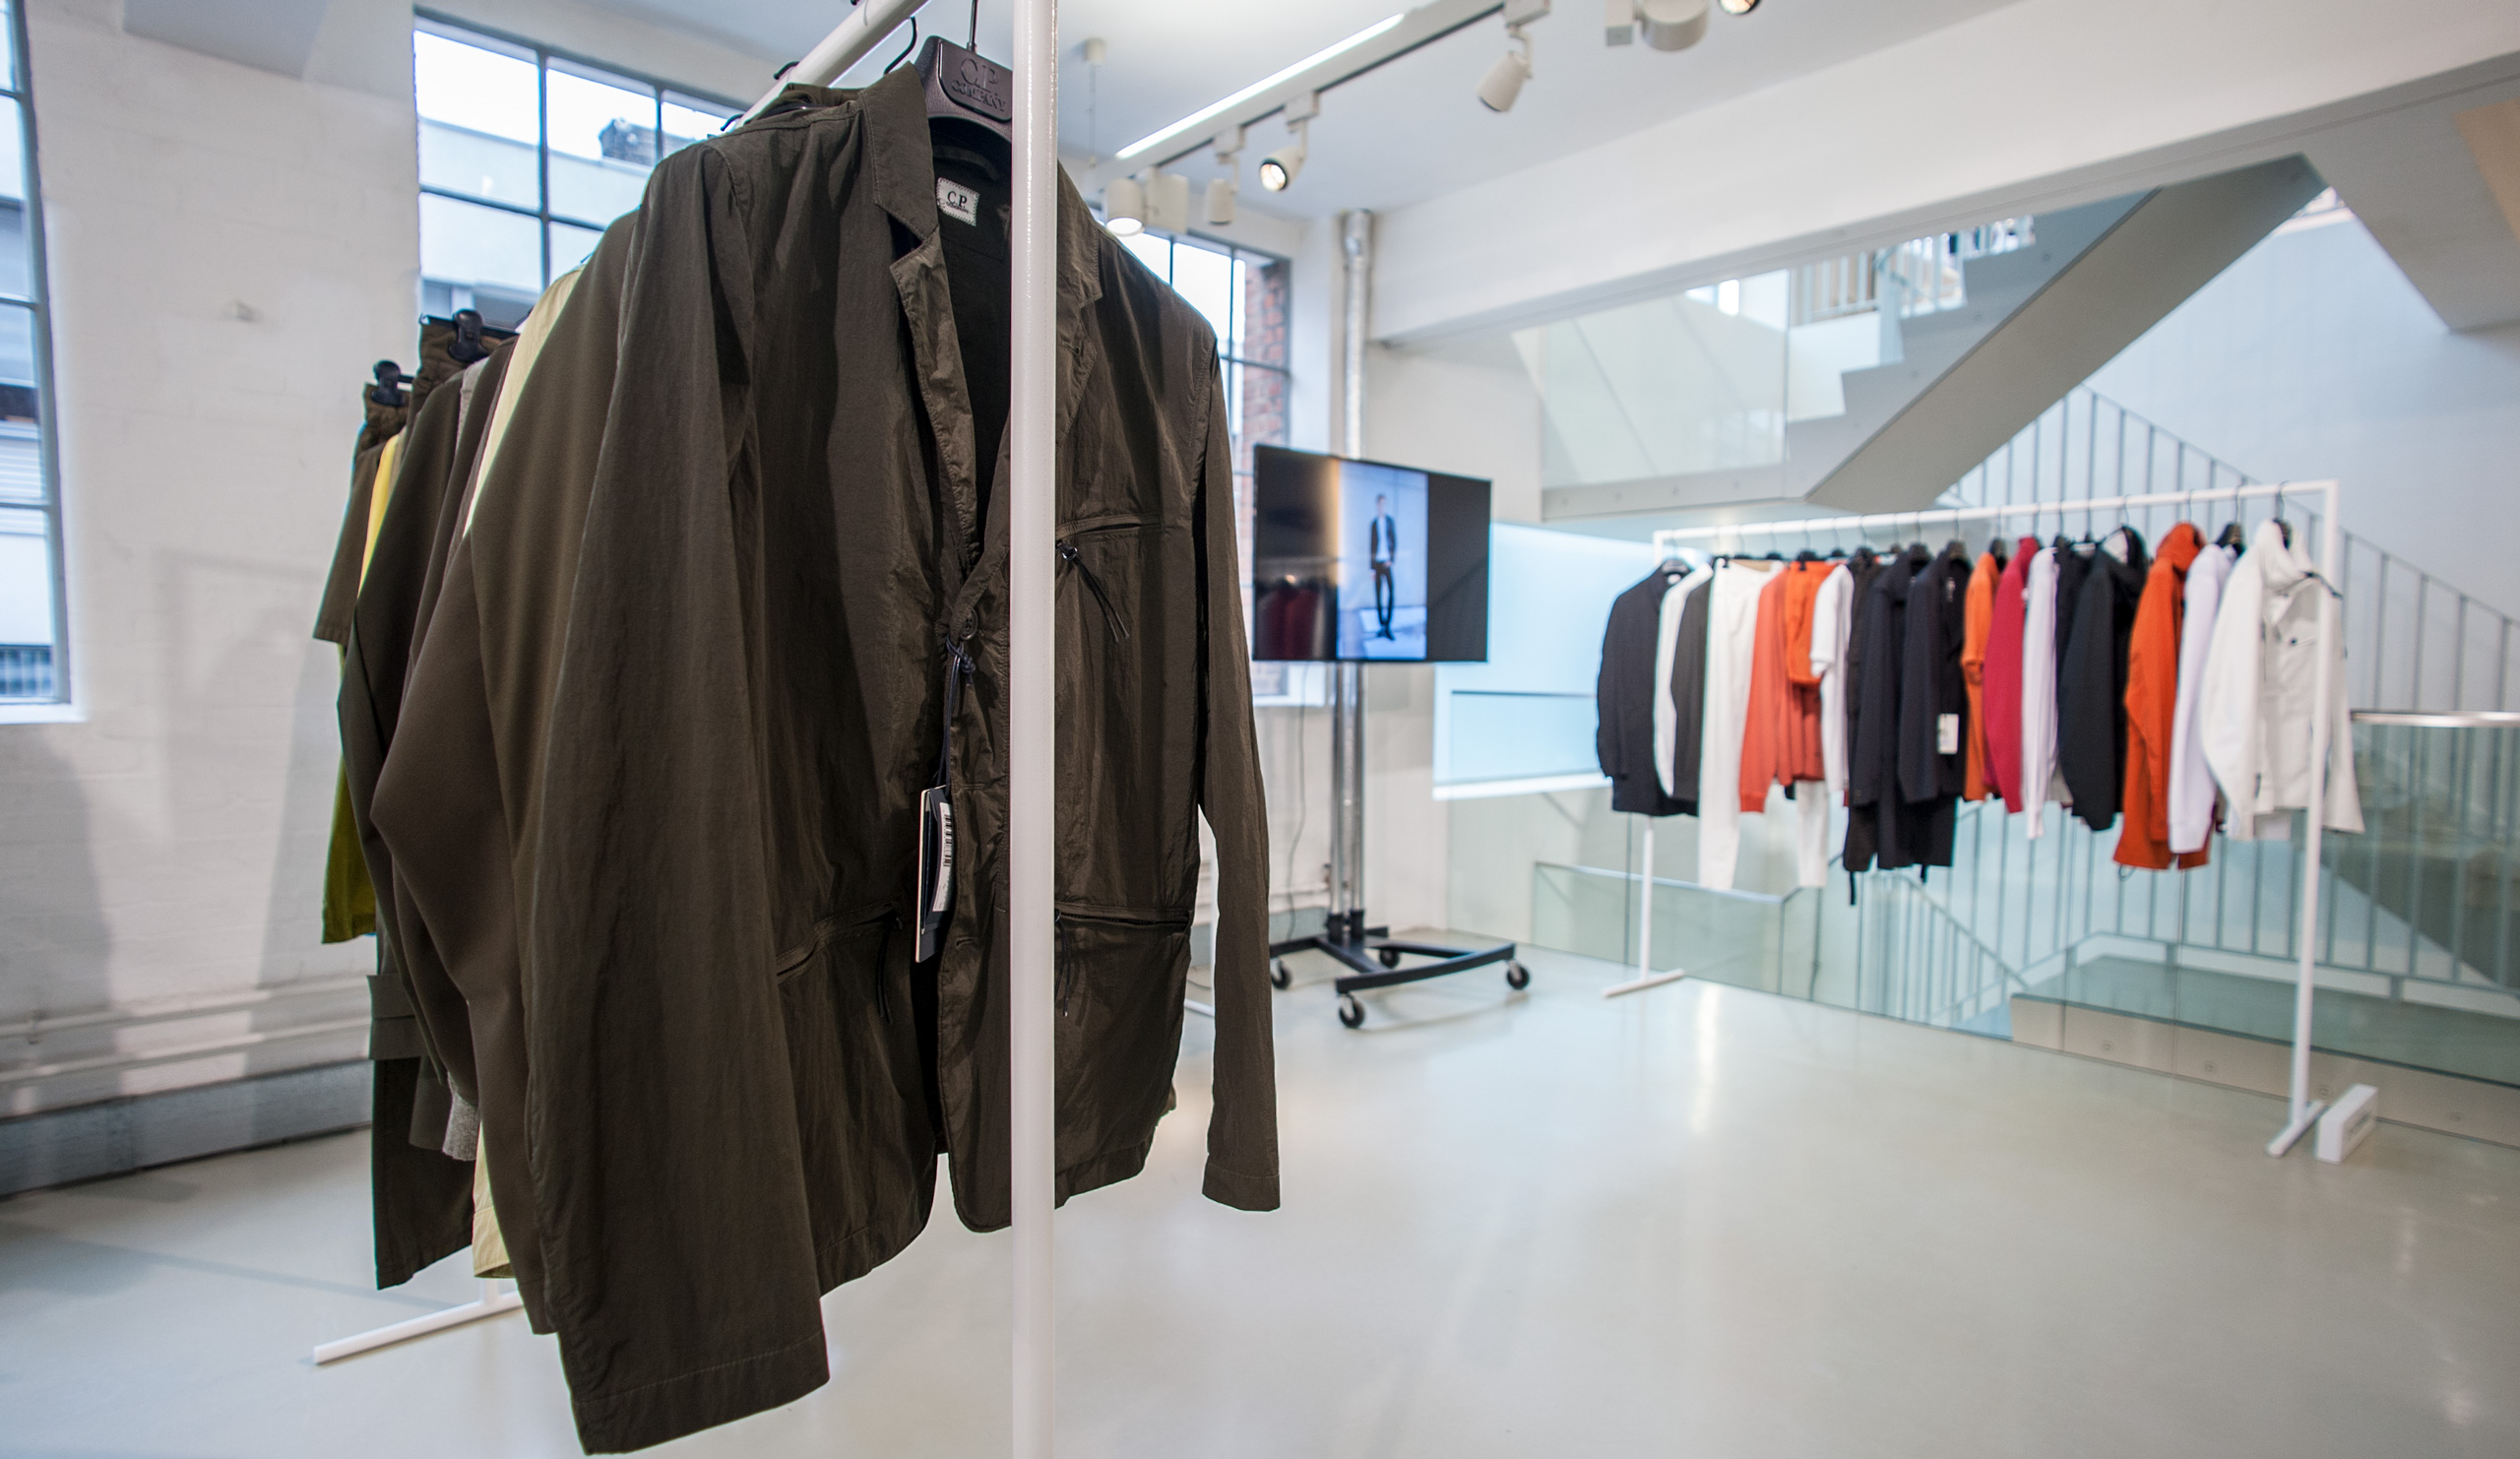 Clothing, Shoes & Accessories Men's Clothing Persevering Stone Island